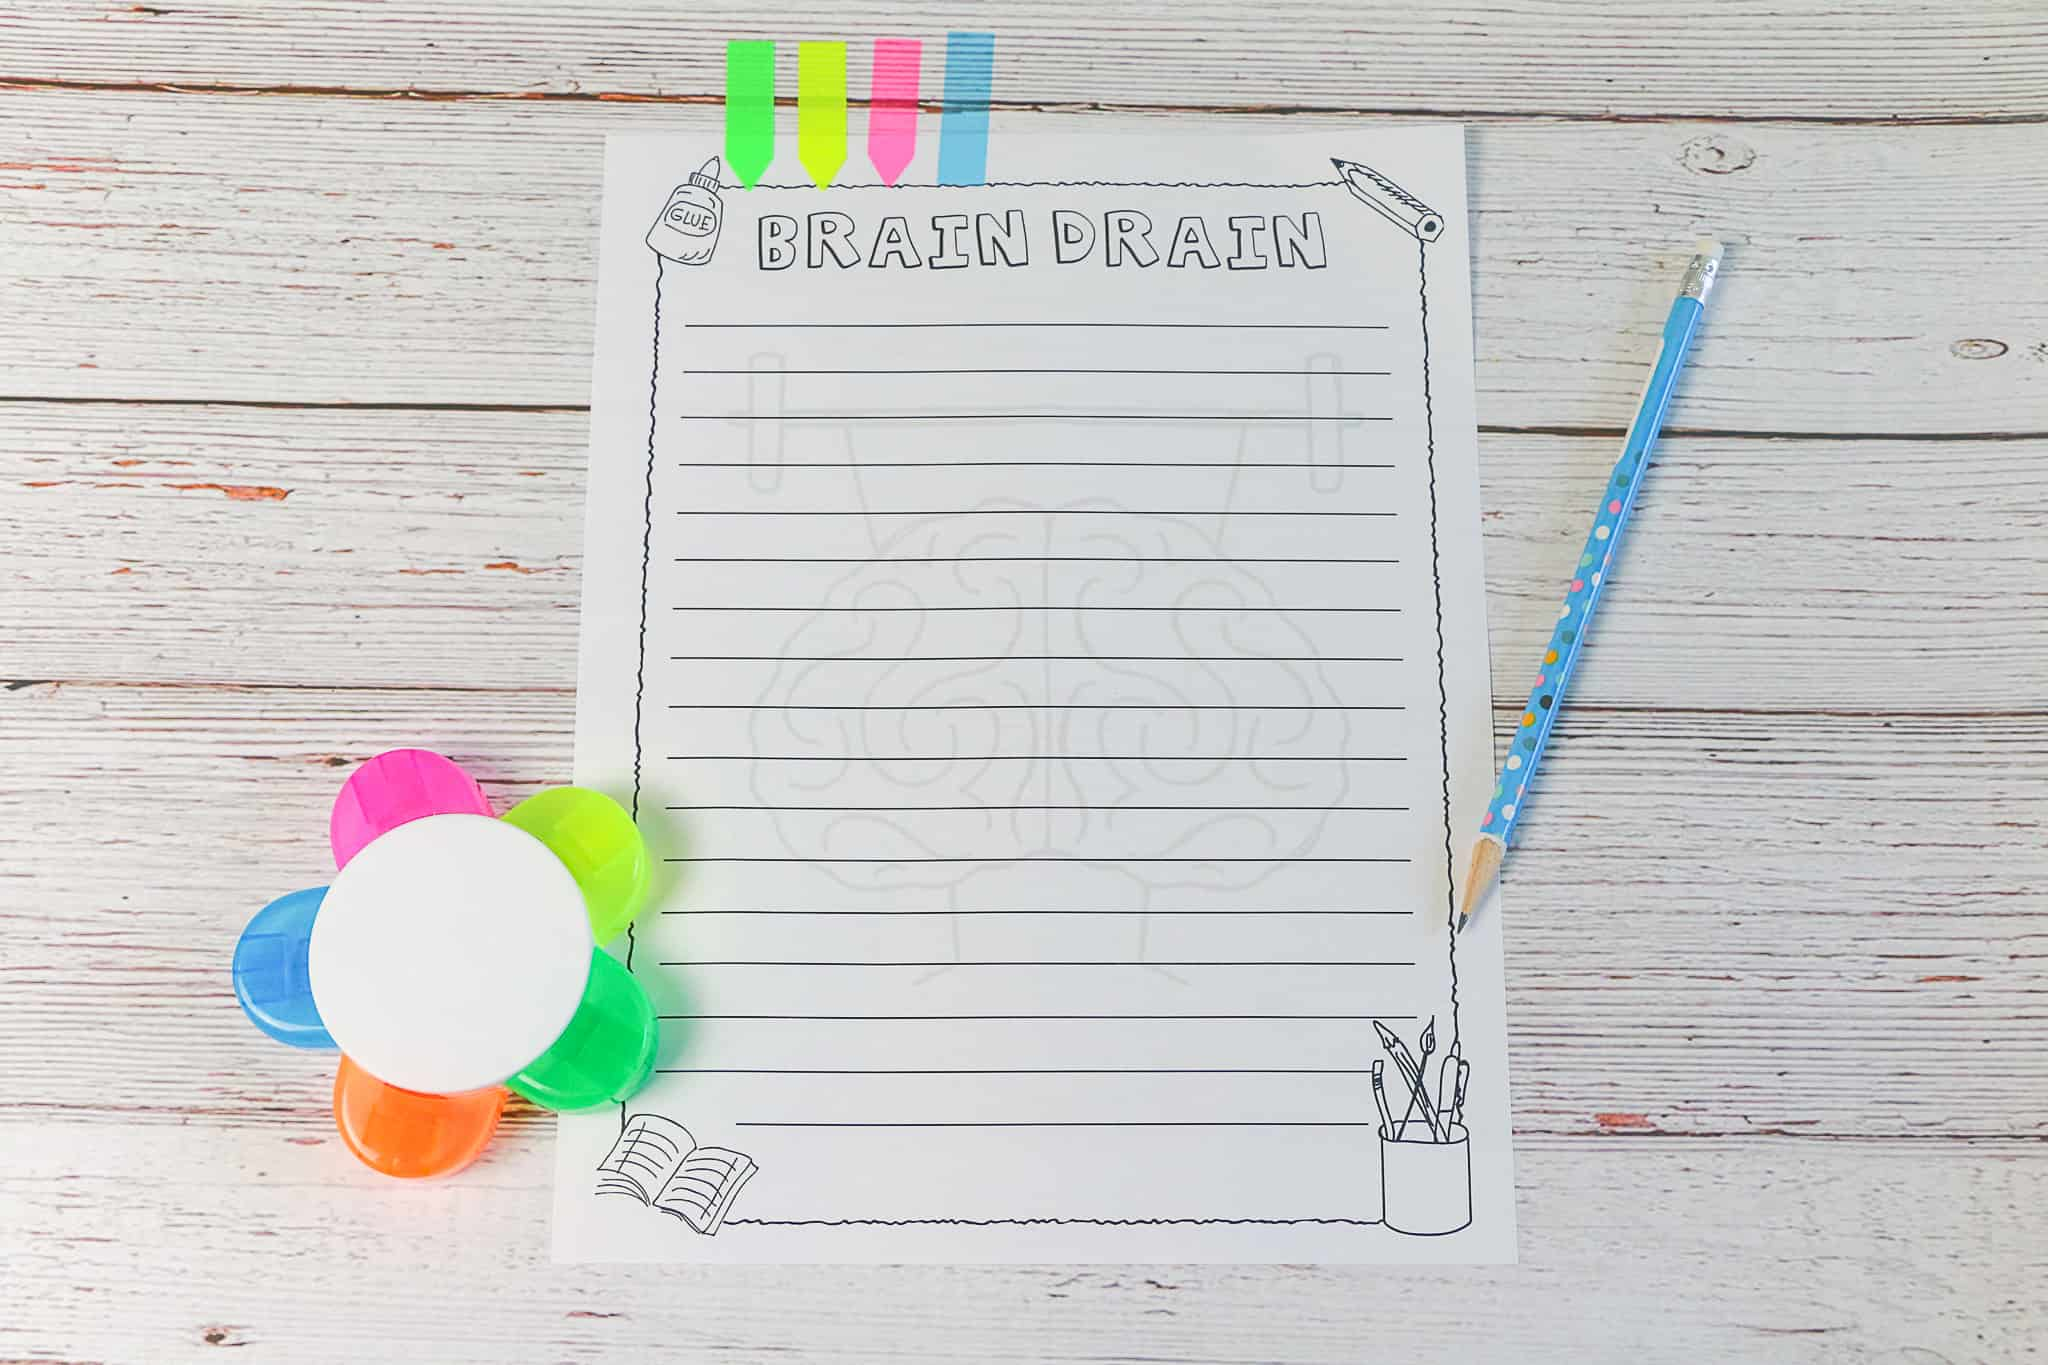 Brain Drain activity sheet to help students remember lessons